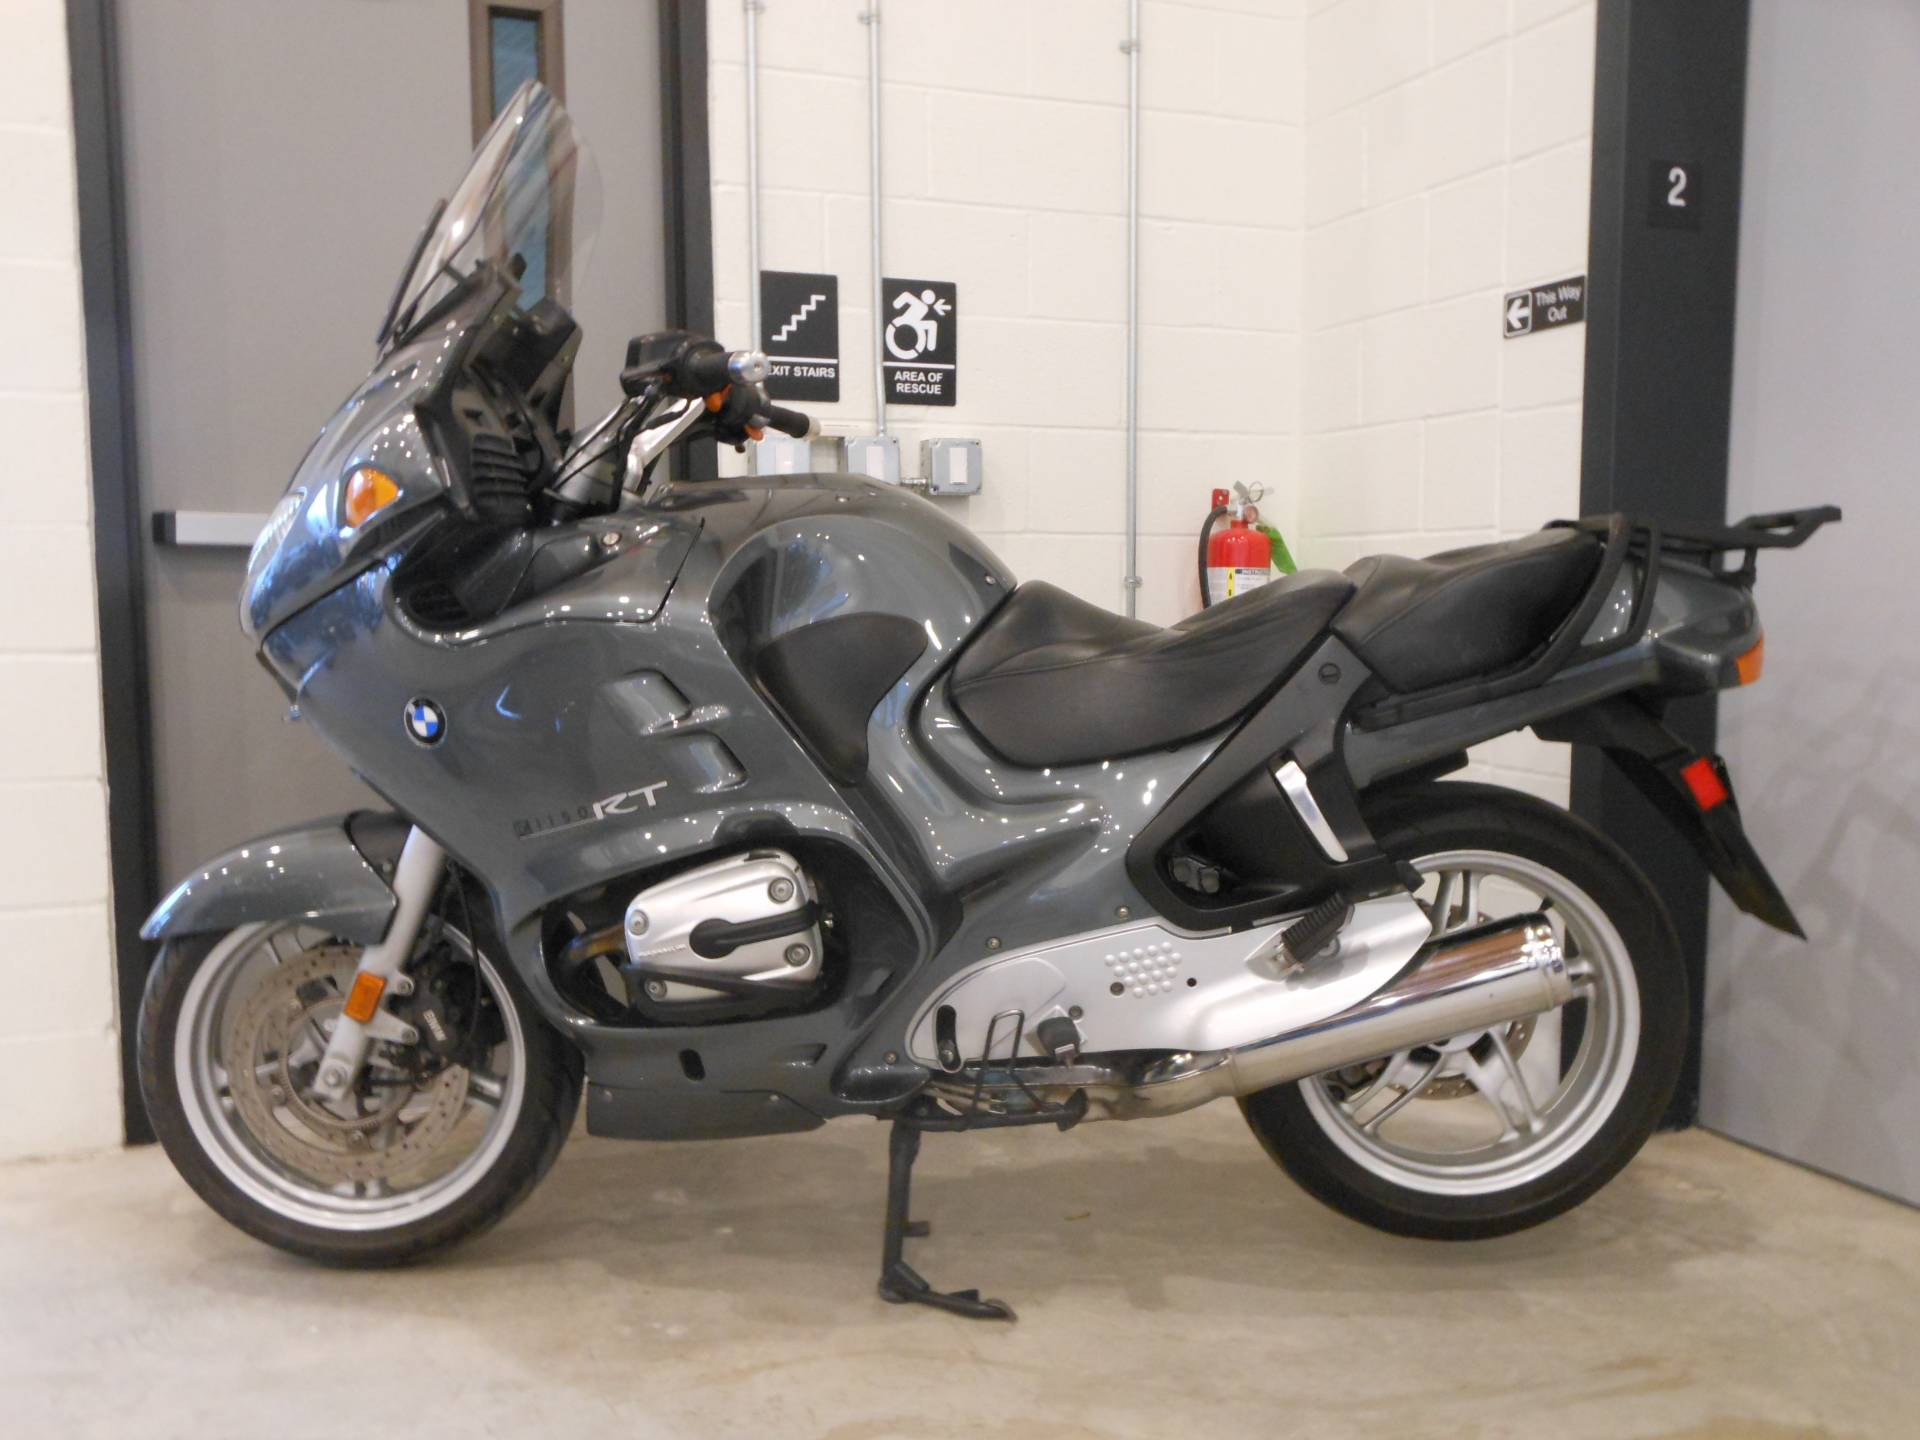 hight resolution of 2004 bmw r 1150 rt abs in port clinton pennsylvania photo 2